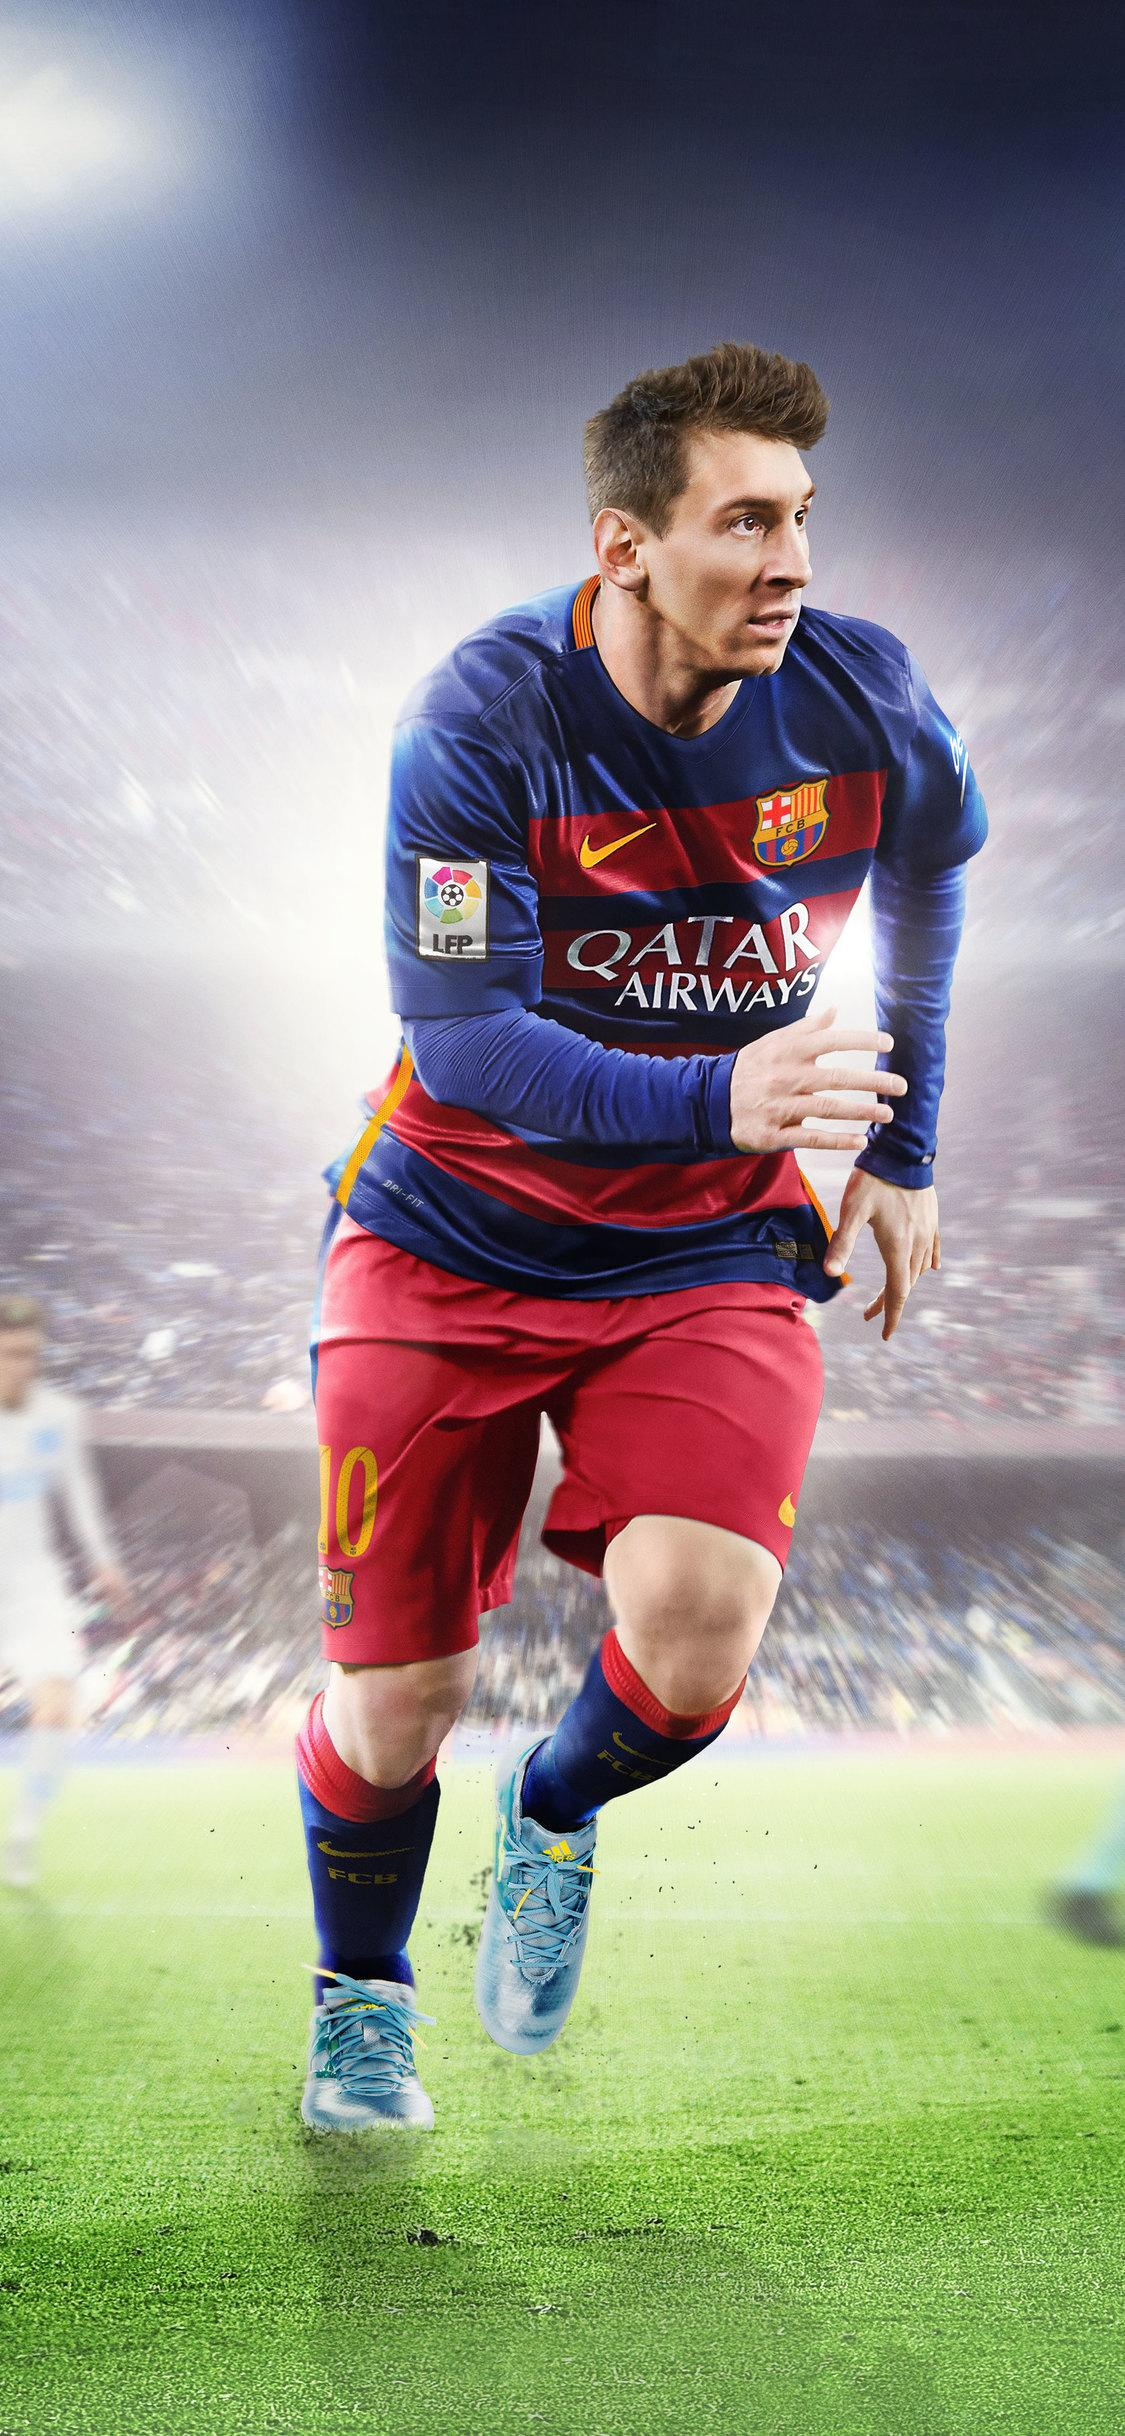 Messi Ultra Hd Iphone Wallpapers Wallpaper Cave